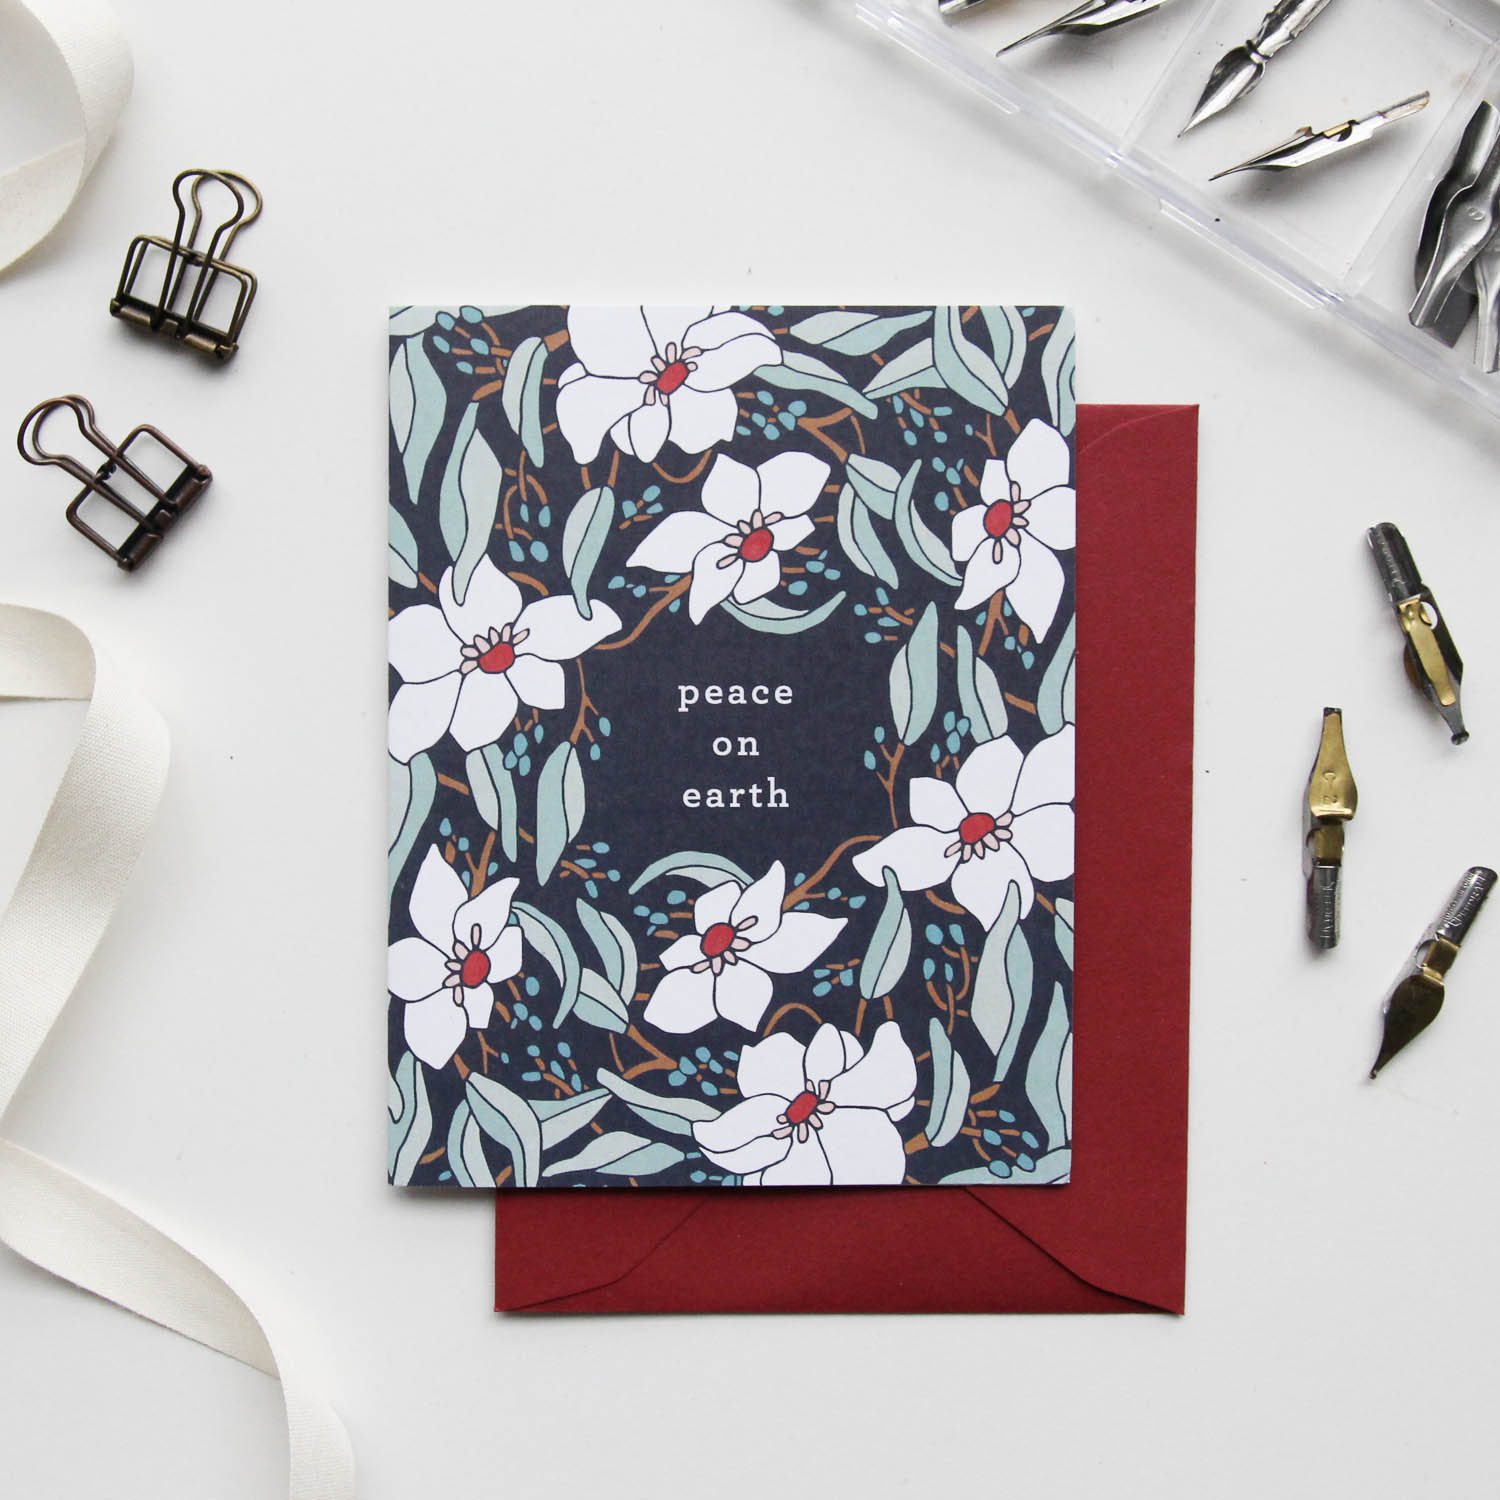 Peace on Earth Card - Christmas Cards 2018, Holiday Cards | Illustrated Floral Christmas Cards by Root & Branch Paper Co.